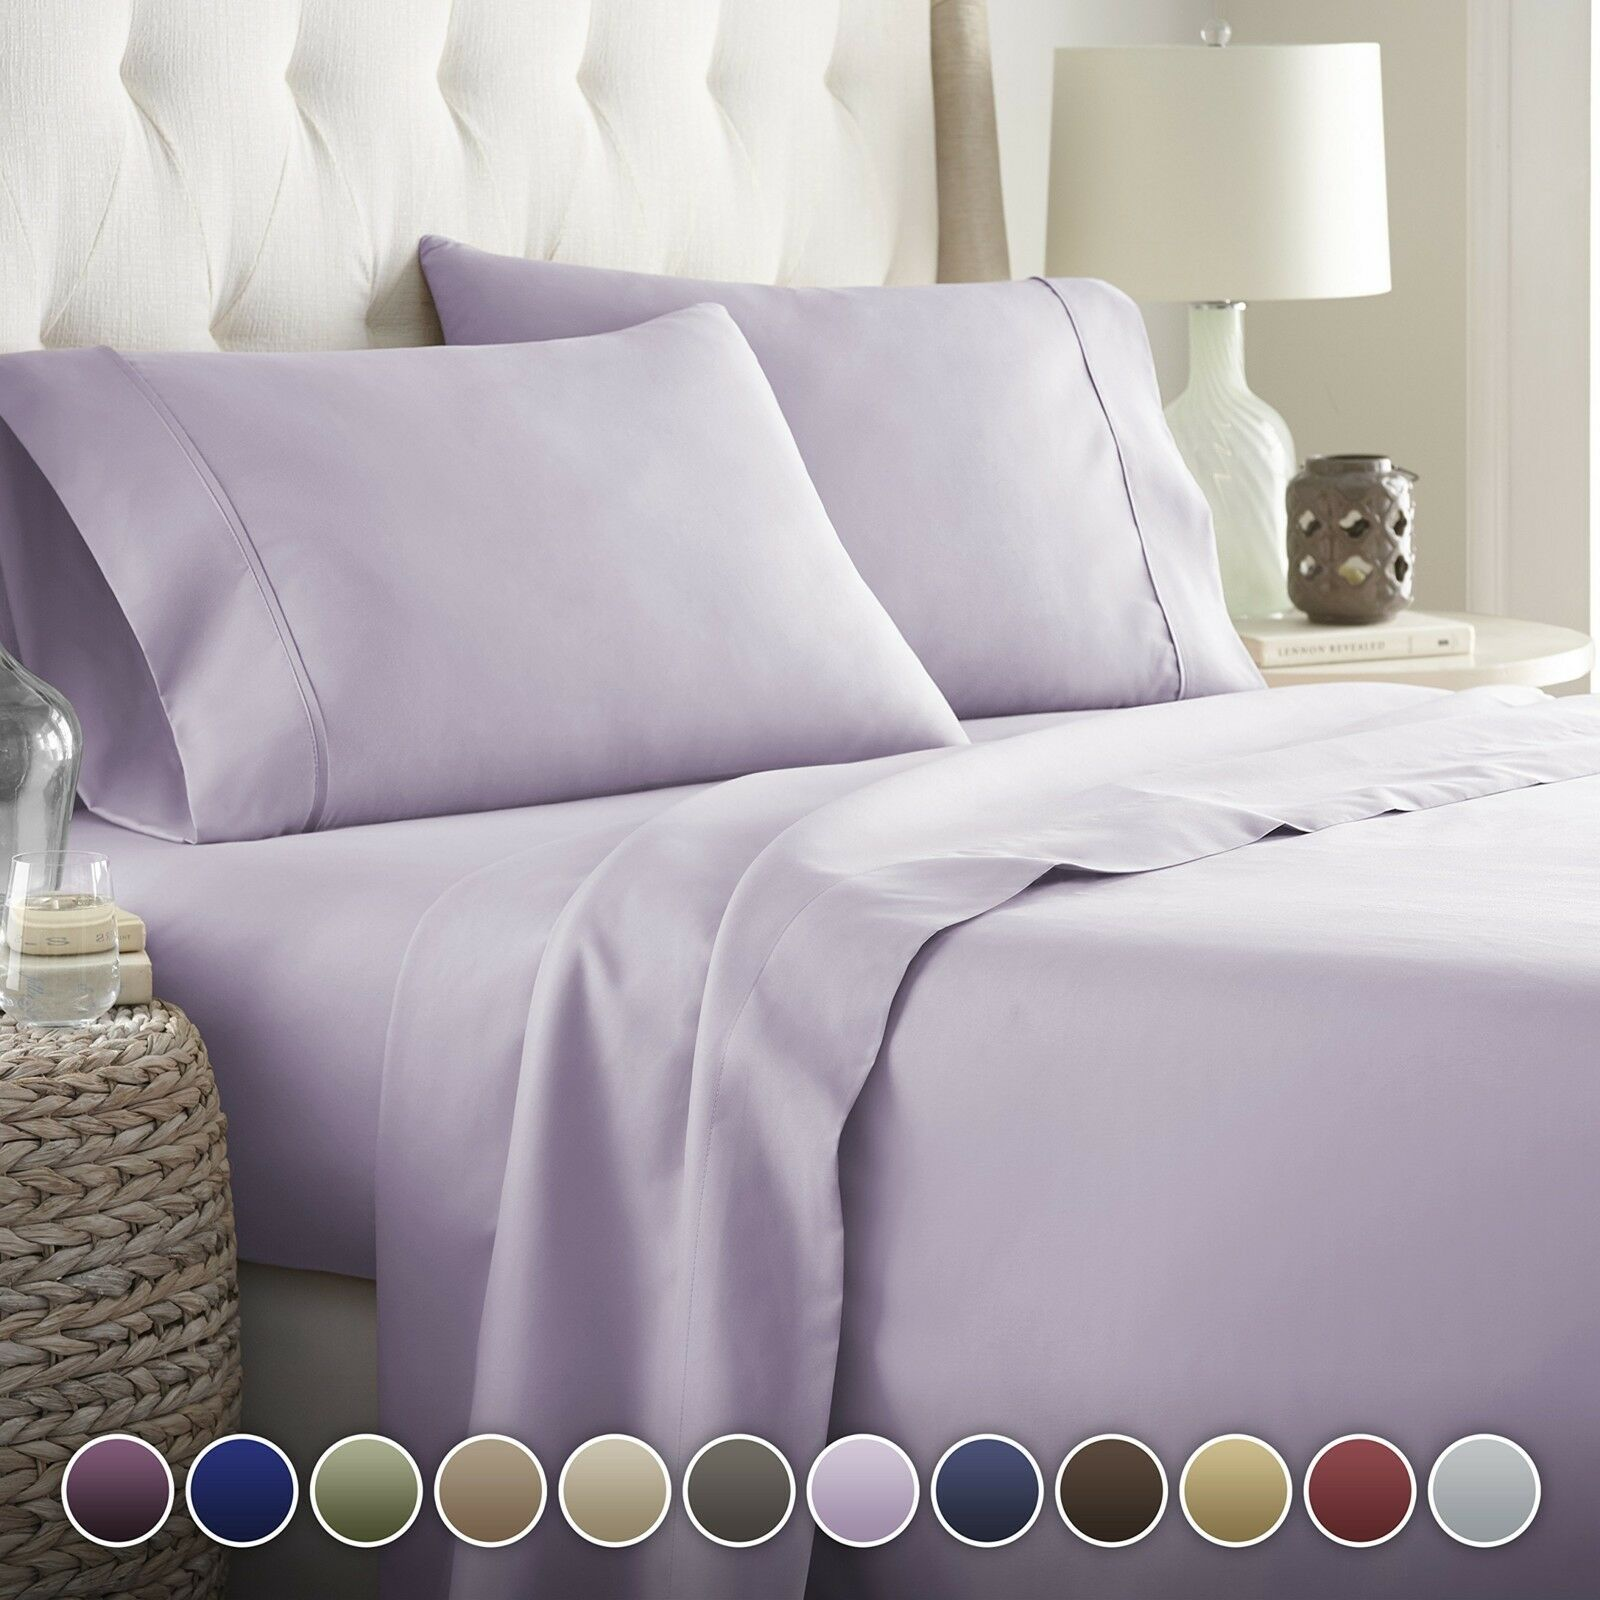 Hotel Luxury Bed Sheets Set-ON SALE TODAY! On Amazon-Top Qua